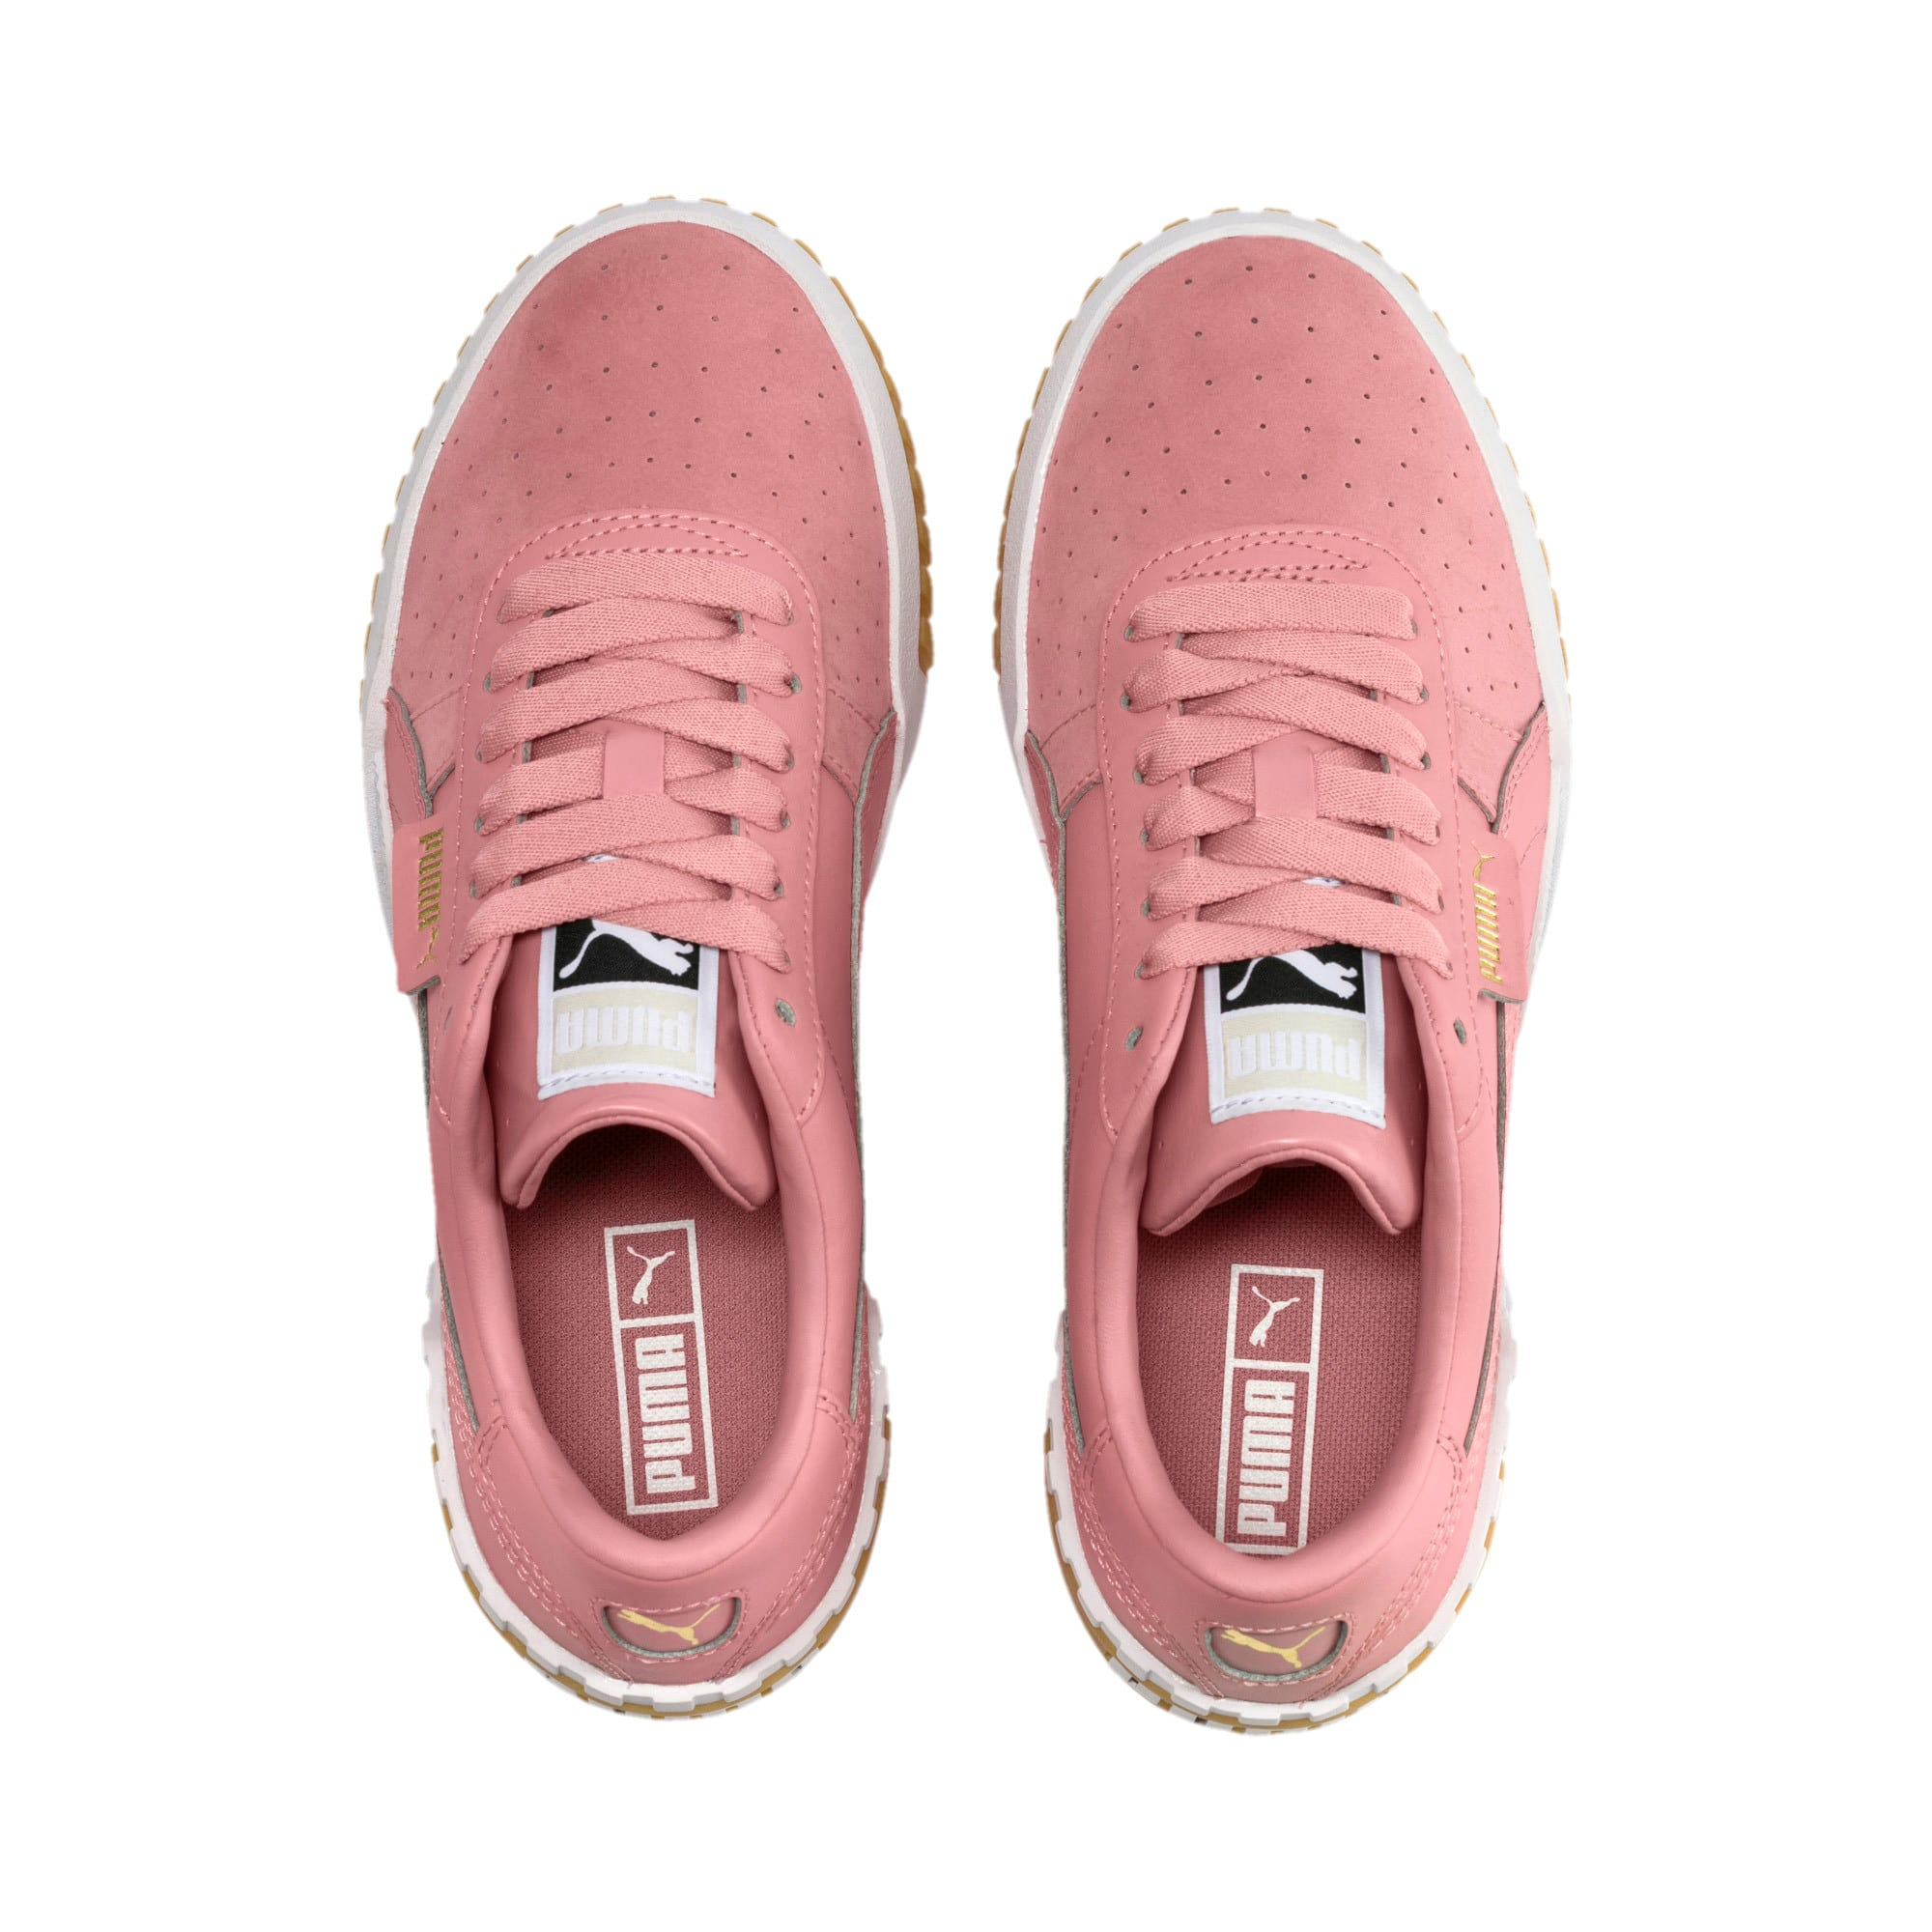 Thumbnail 6 of Cali Exotic Damen Sneaker, Bridal Rose-Bridal Rose, medium